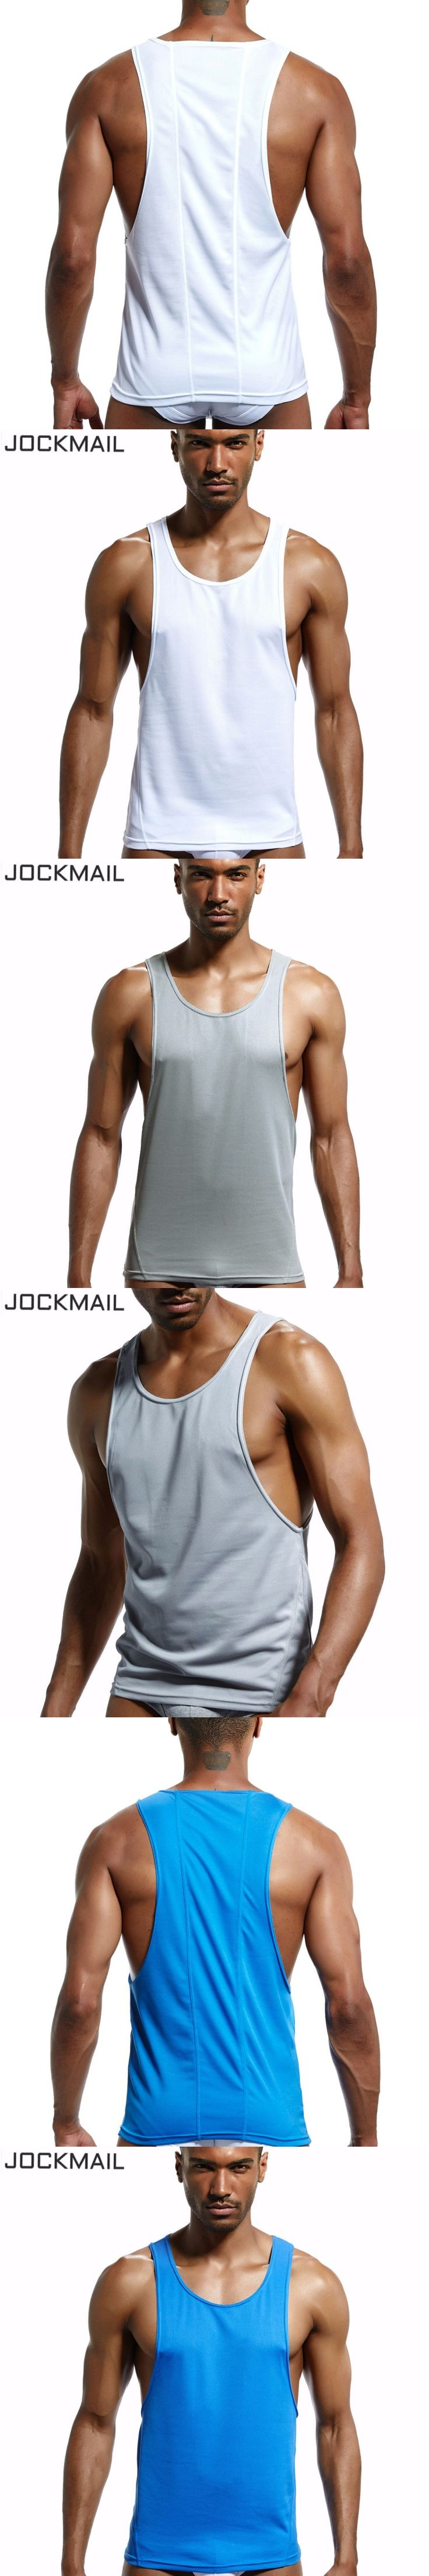 JOCKMAIL Brand Mens Workout Tank Tops Fitness Bodybuilding Clothing Low Cut Armholes Vivid Vest Muscle Singlets Men Activewear